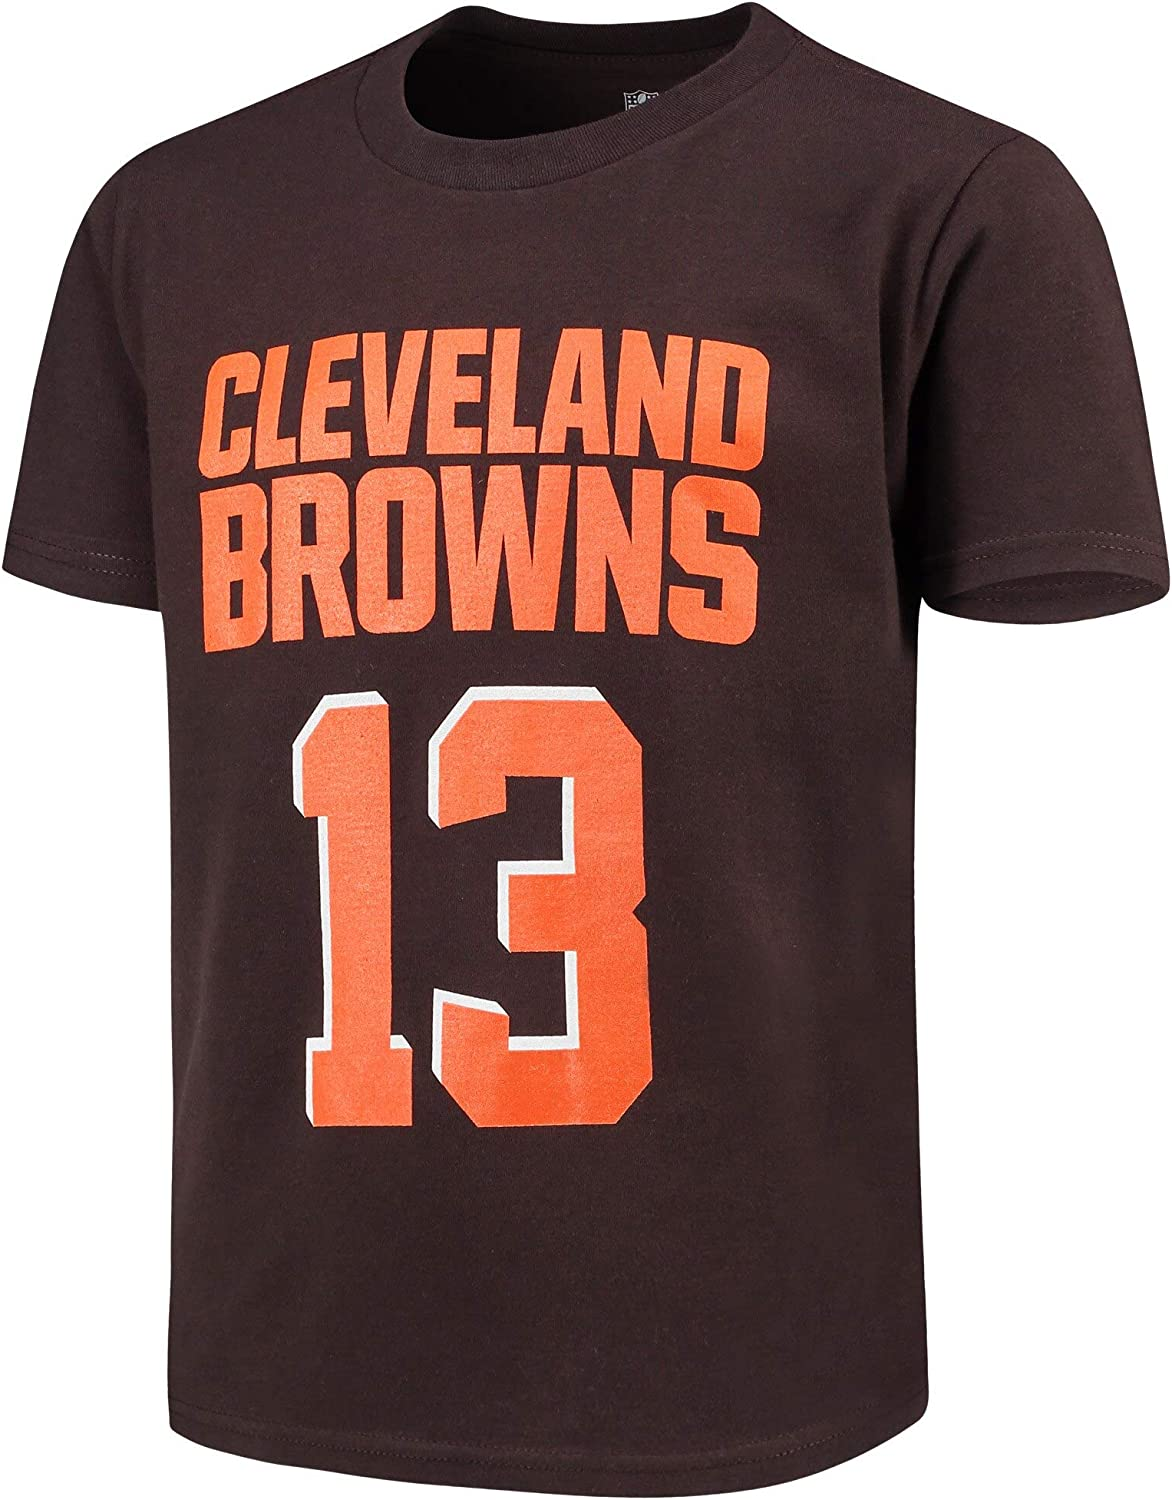 Outerstuff Odell Beckham Jr Cleveland Browns Brown Youth 8-20 Mainliner Name /& Number Player T-Shirt